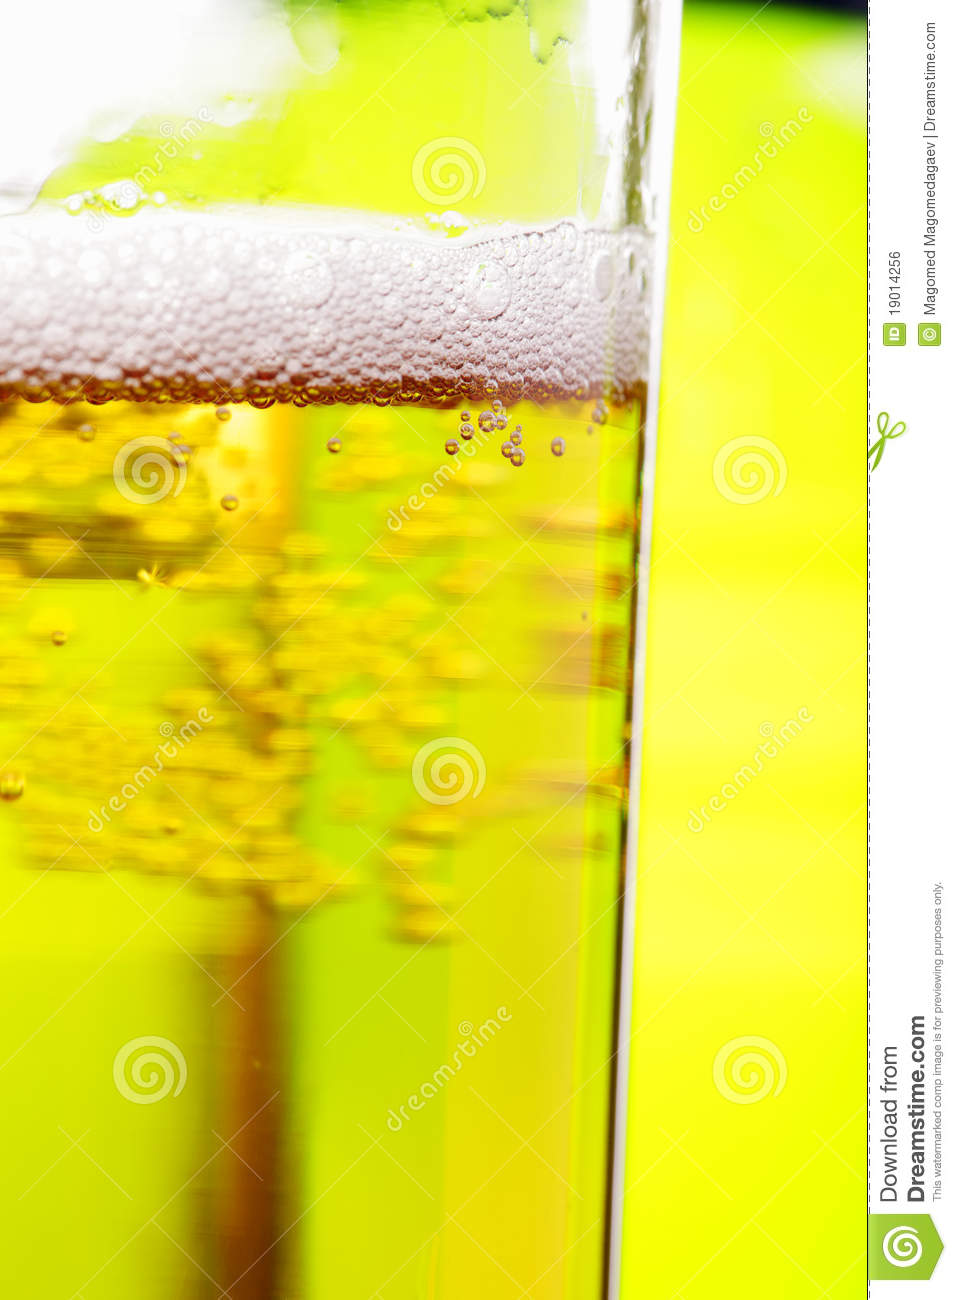 Glass of beer against green